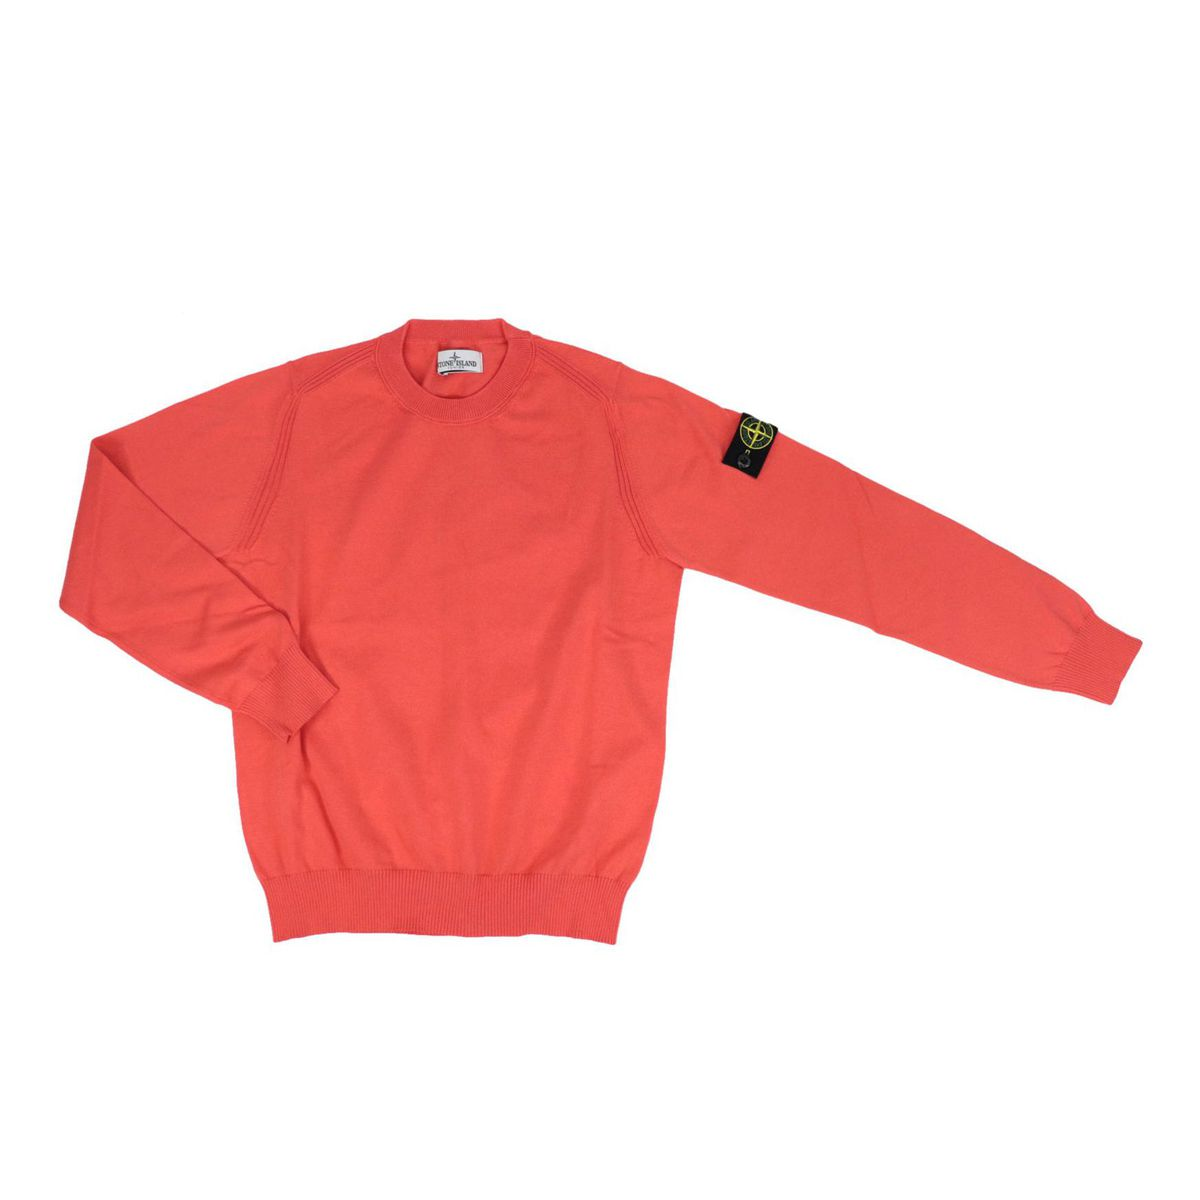 Crew neck cotton sweater with logo patch and ribbed profiles Coral STONE ISLAND JUNIOR